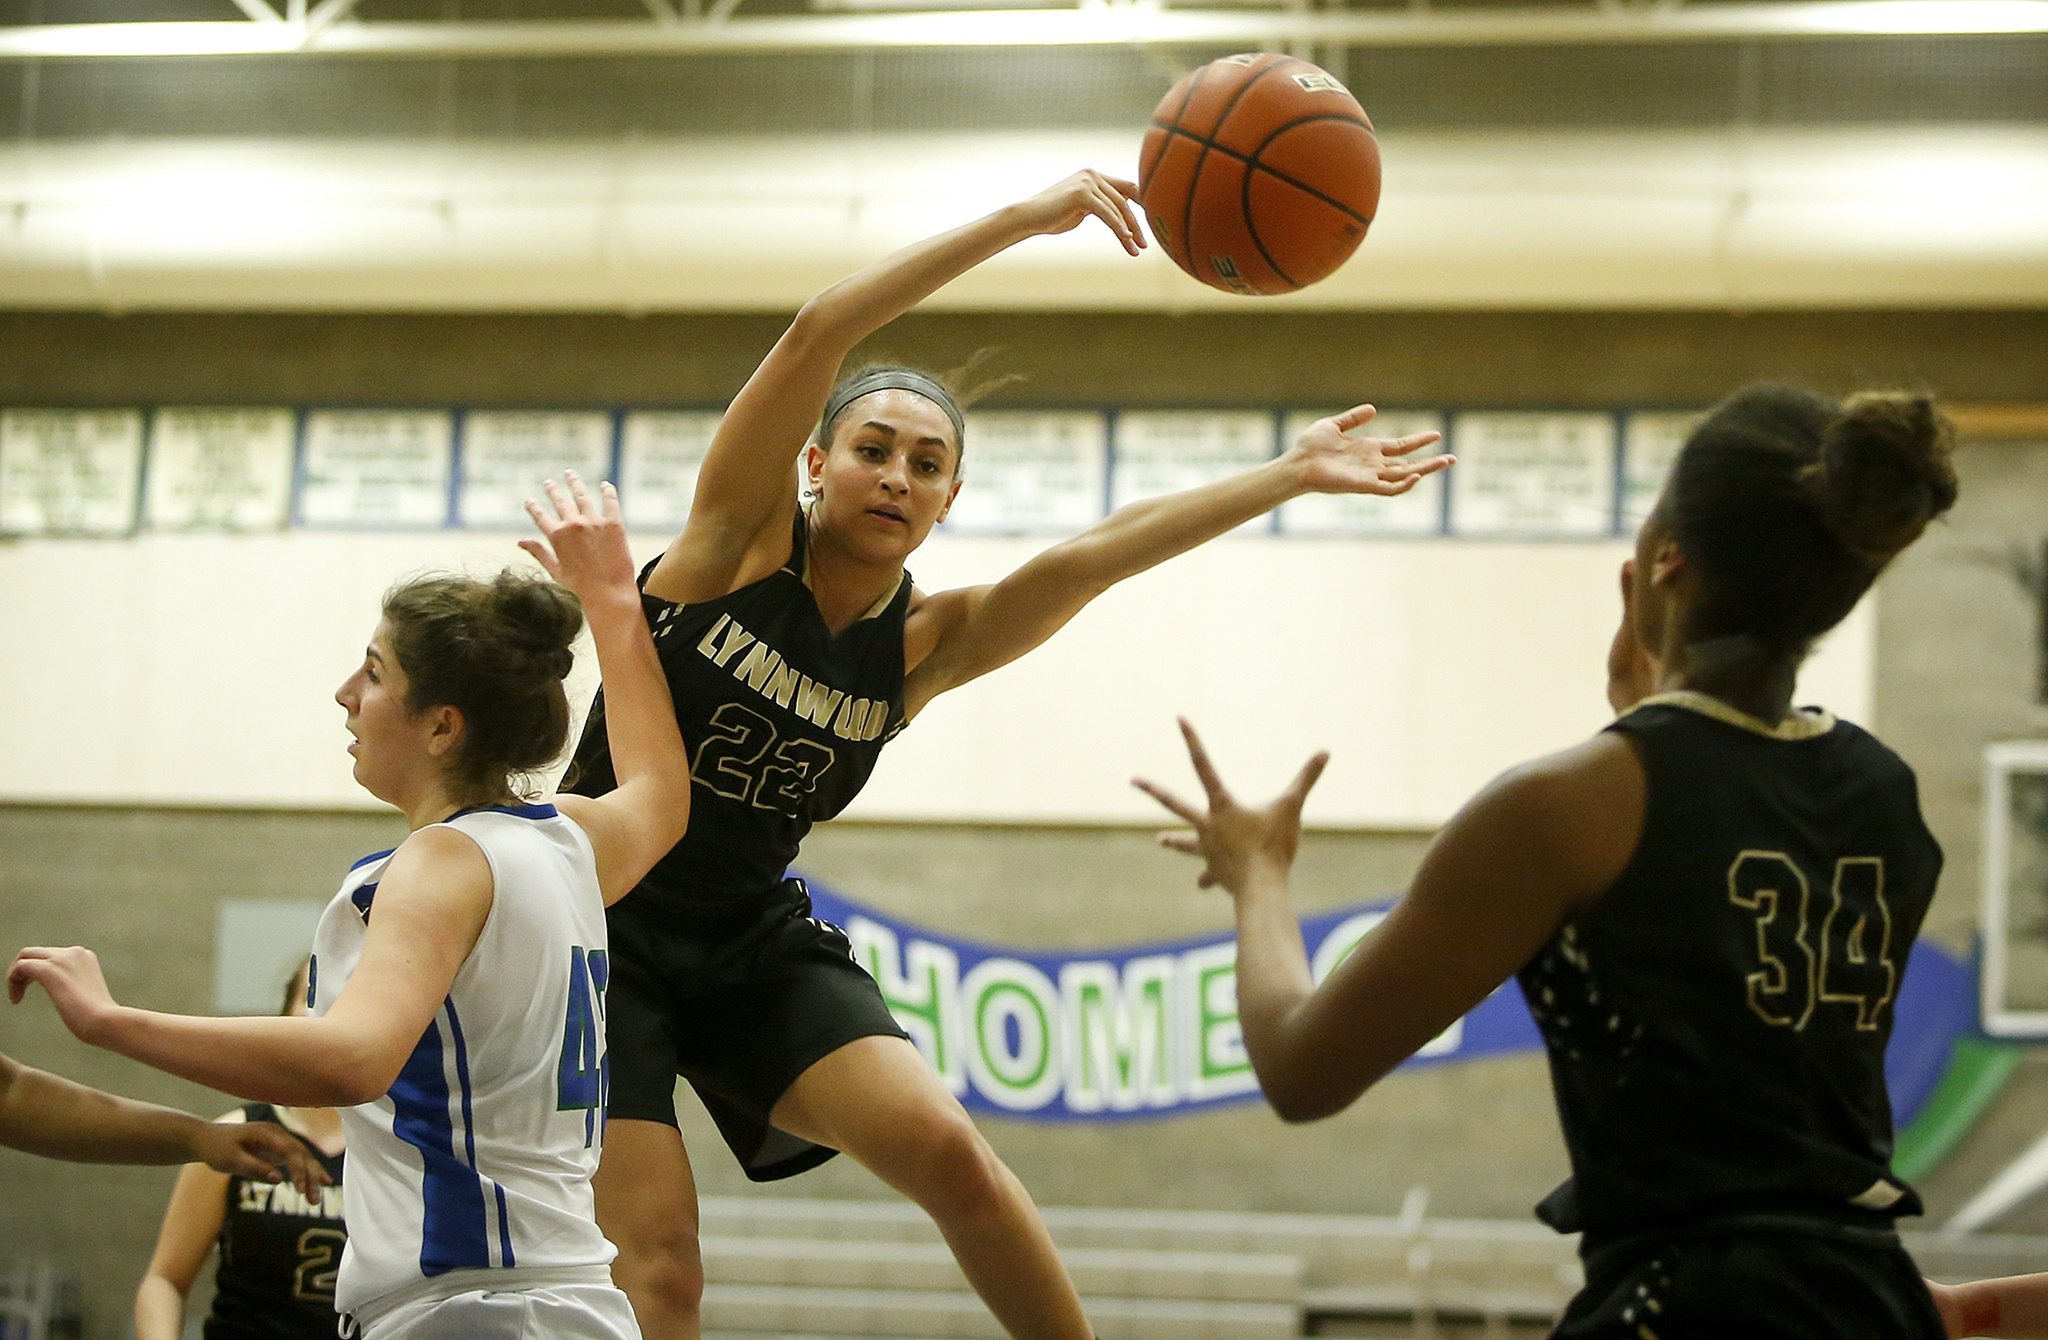 Lynnwood's Kaprice Boston (center) dishes the ball off to teammate Kia Crawford as Shorewood's Taryn Shelley (left) defends during a game at Shorewood High School in Shoreline on Friday. (Ian Terry / The Herald)